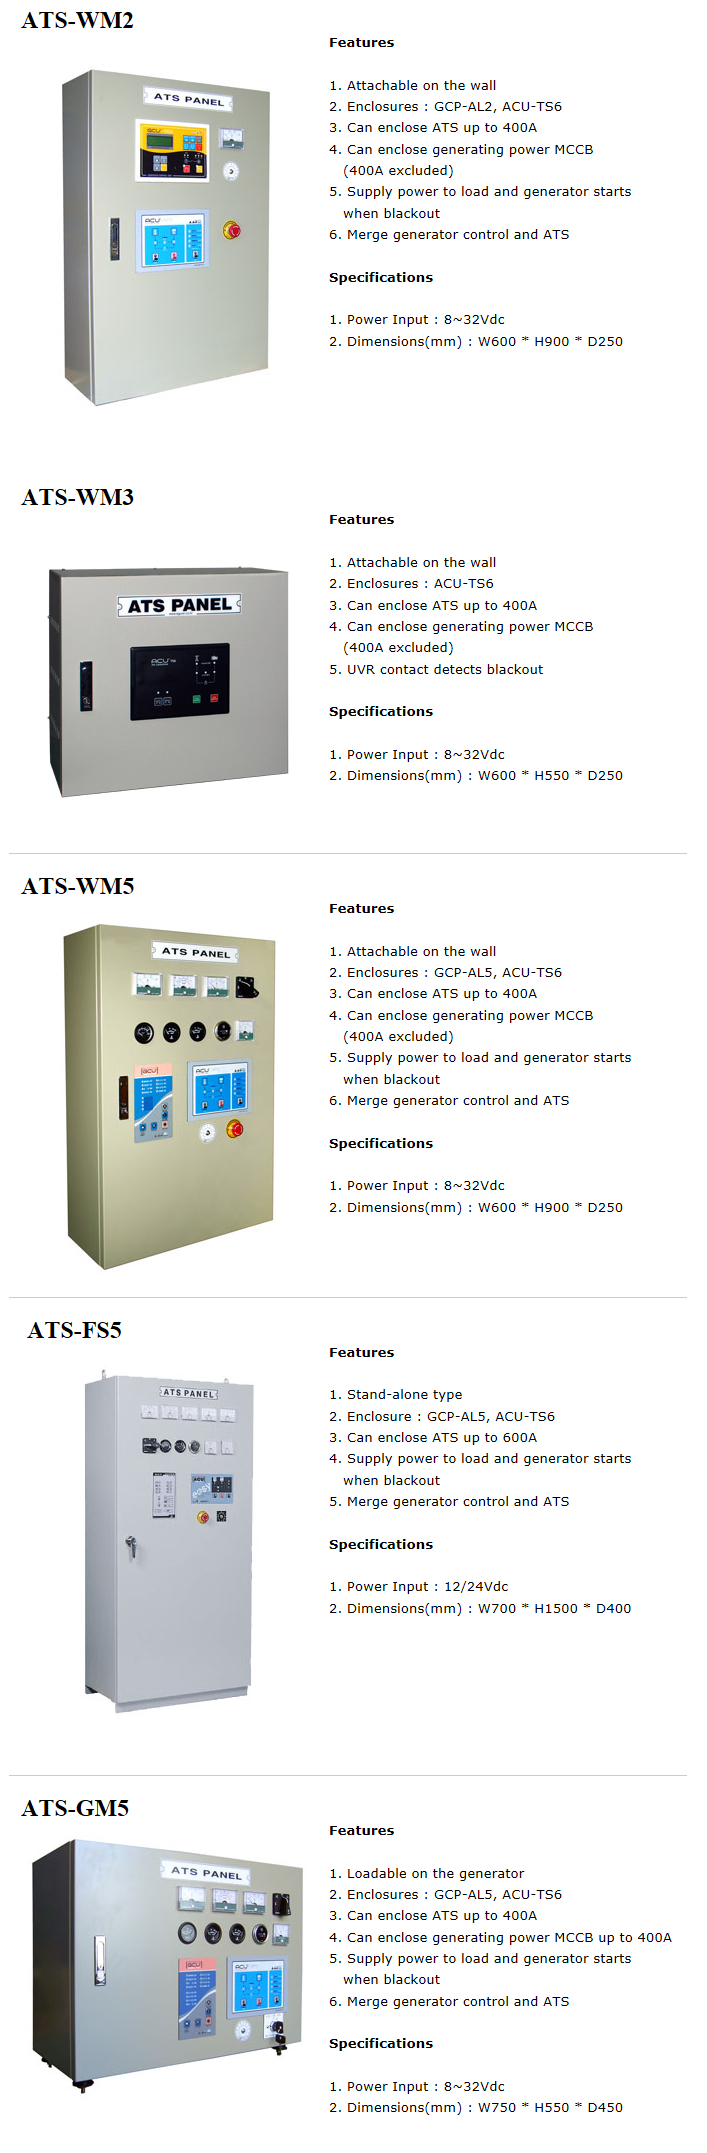 EGCON Automatic Transfer Switch ATS